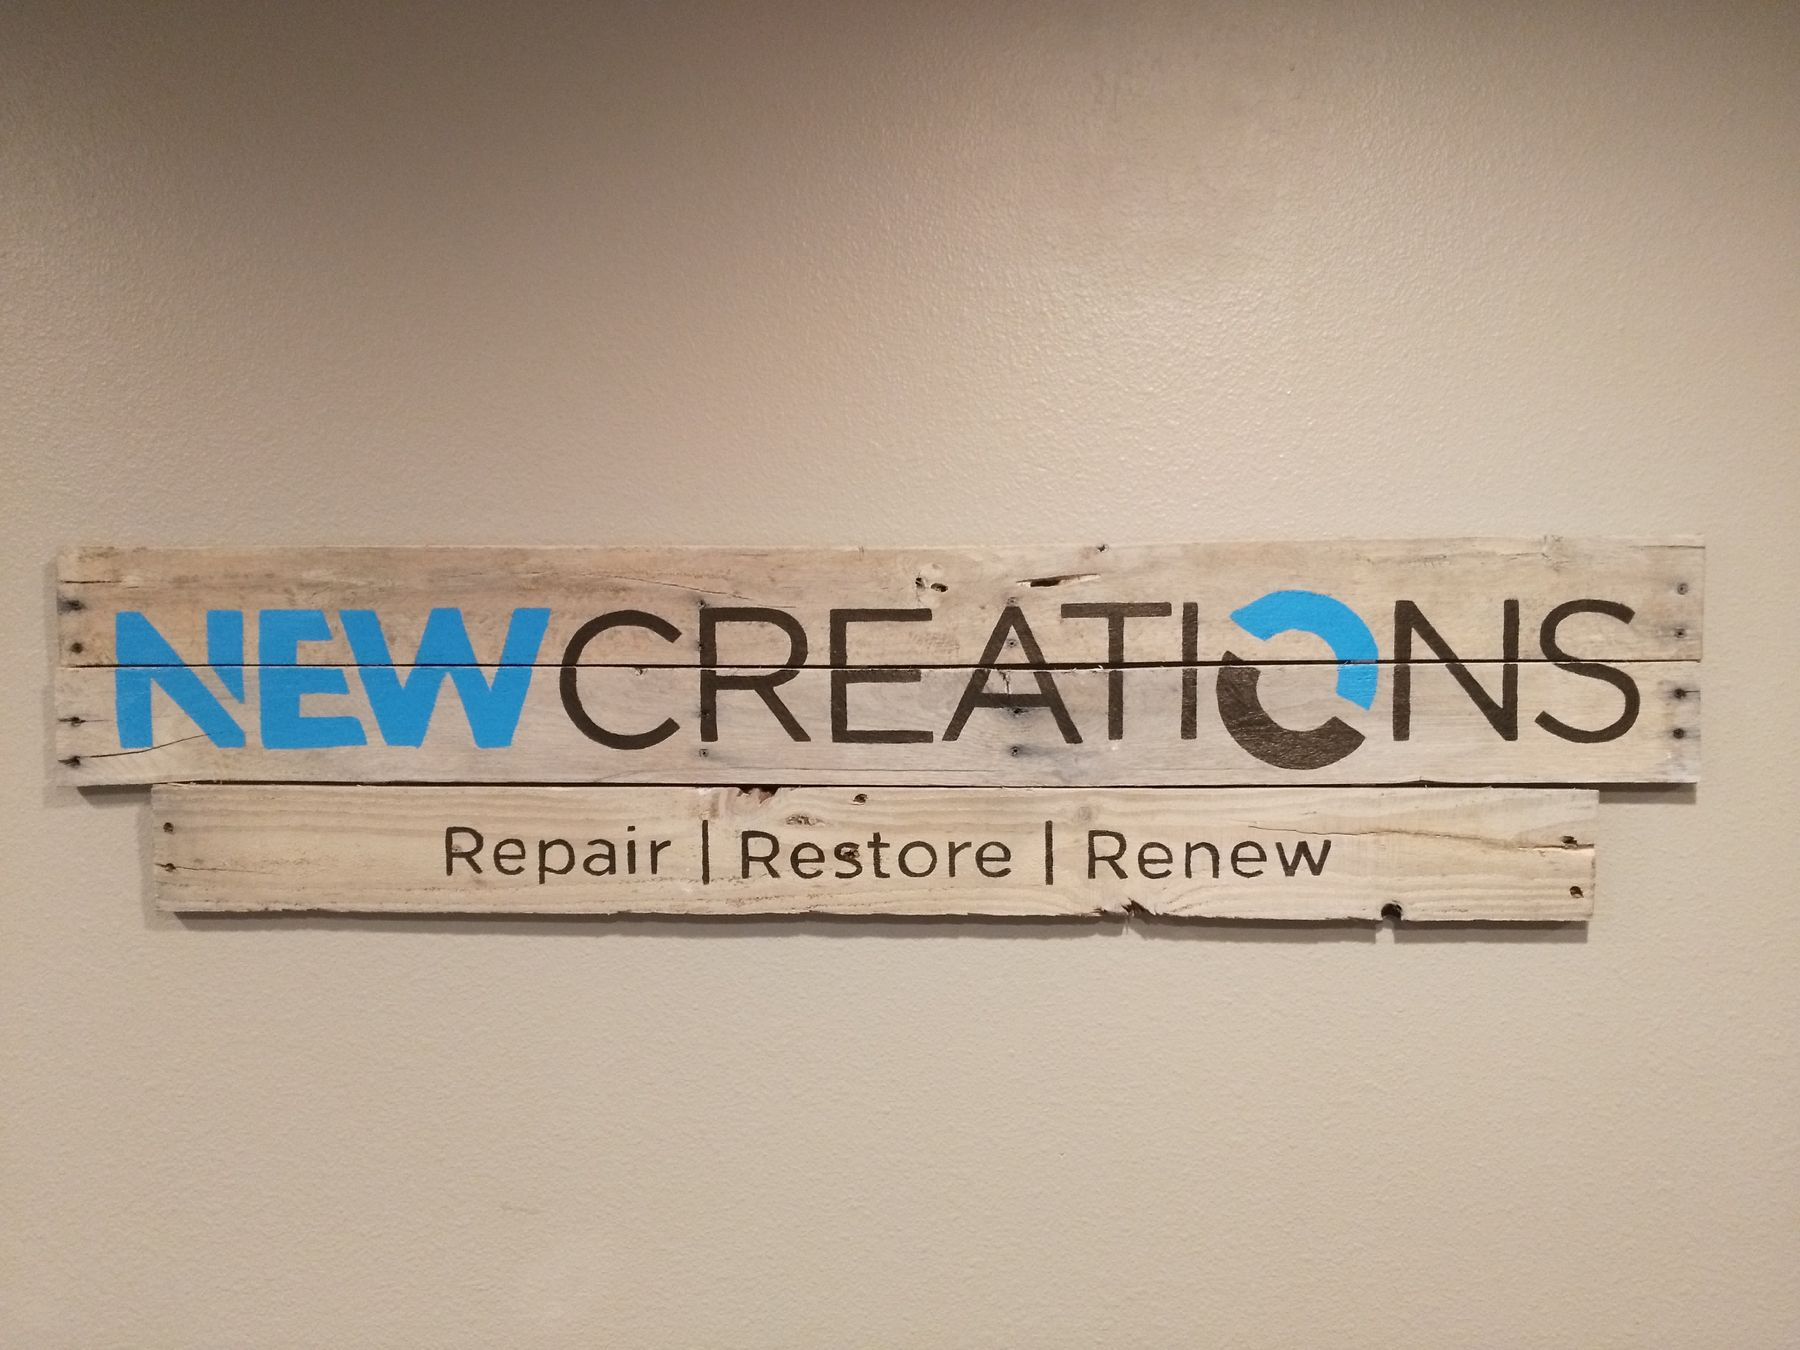 New Creations USA Provides Service To Vancouver, WA And Portland, OR For  Interior, Vehicle, Boat And Furniture Repair And Restoration. Repair.  Restore.